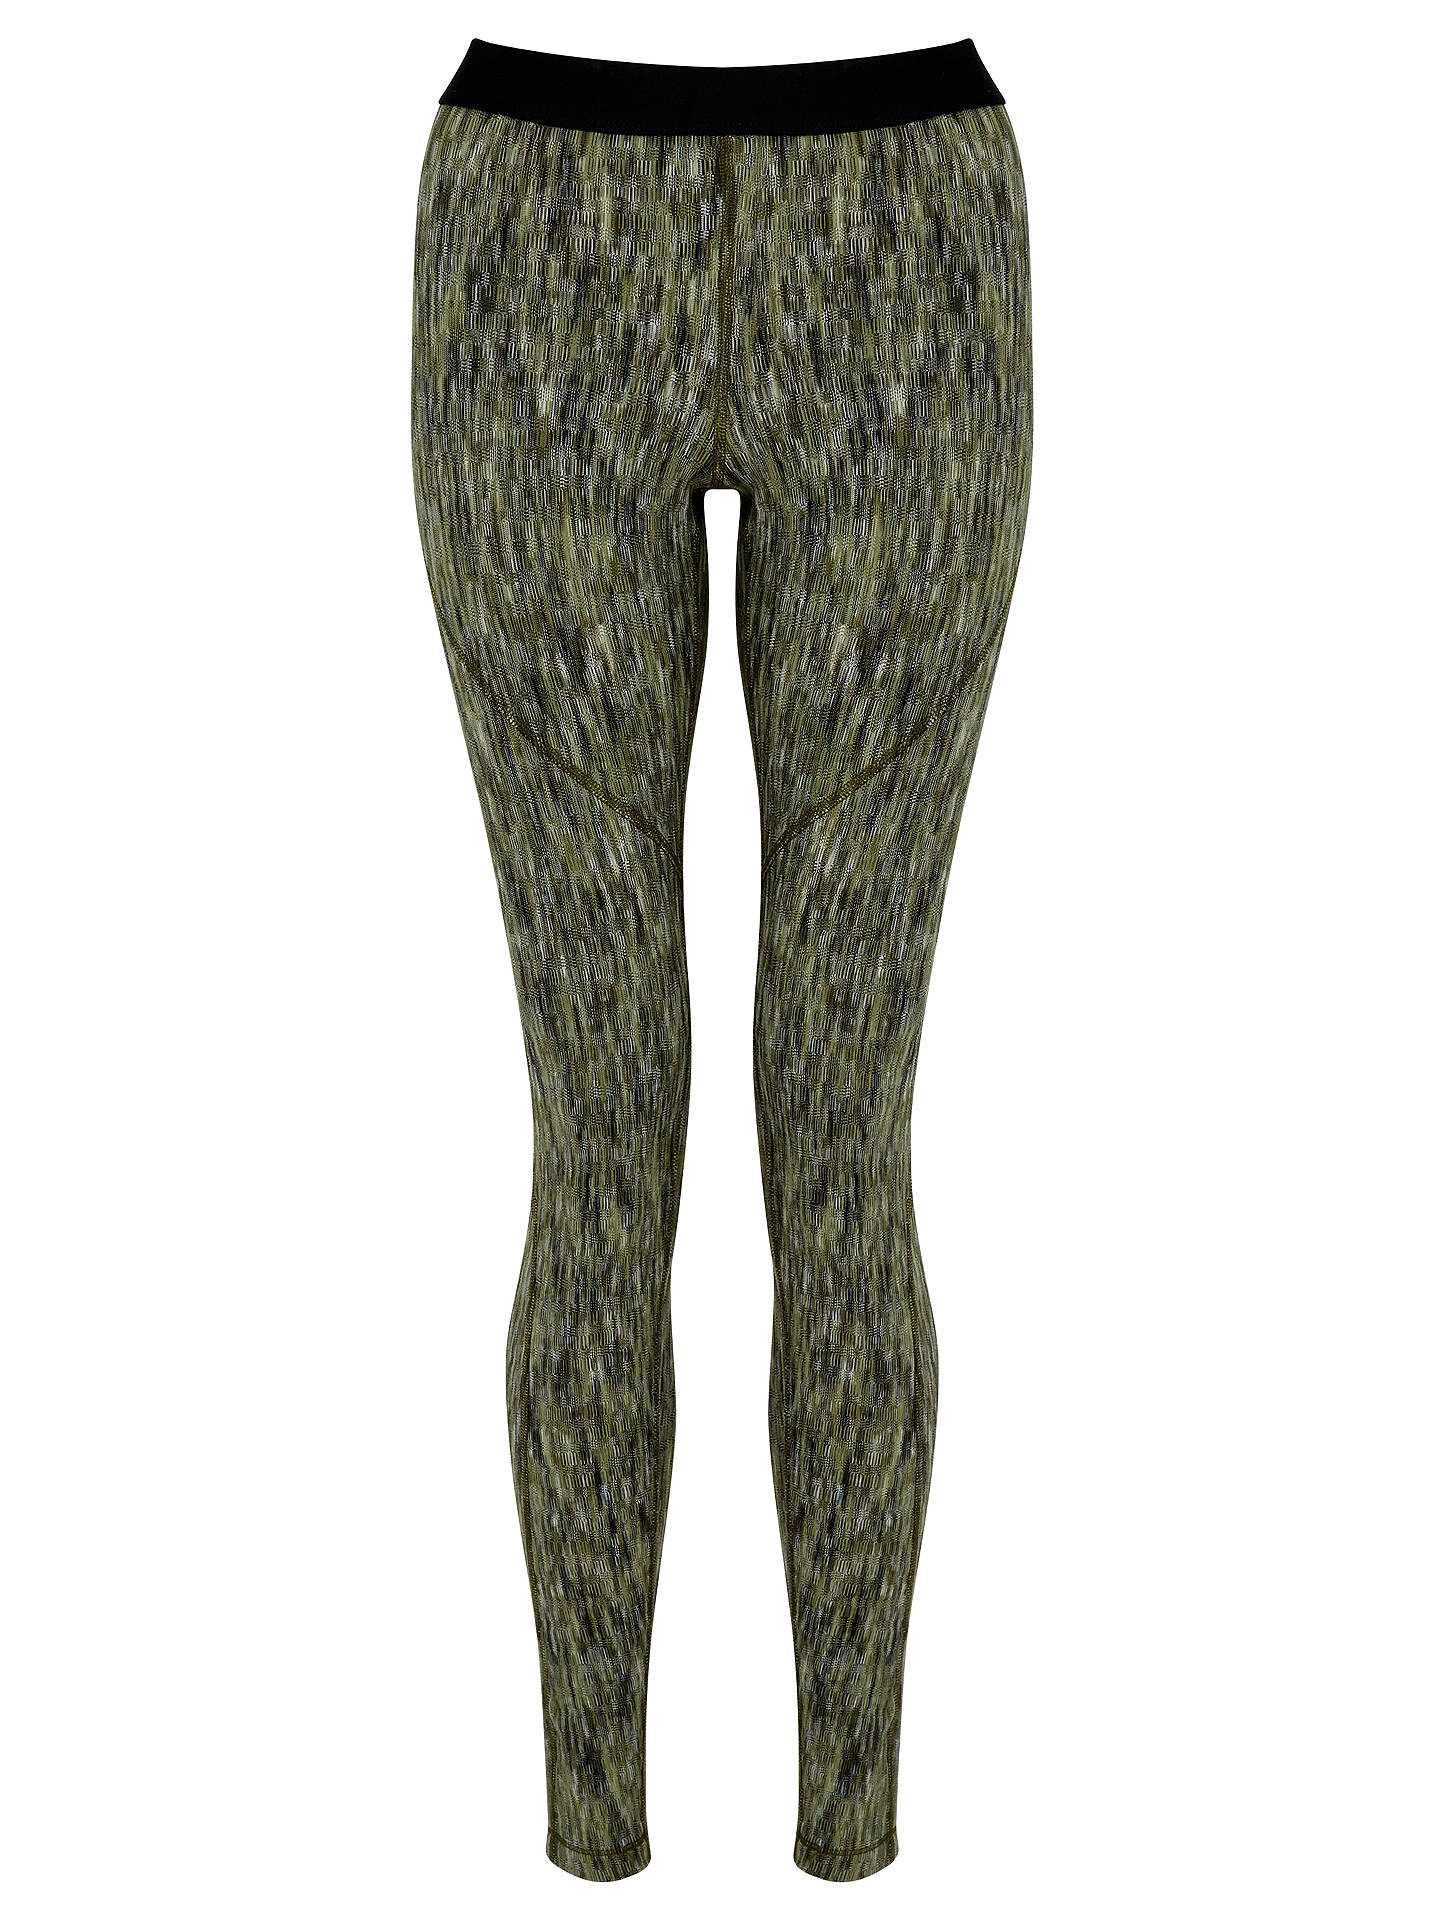 4c9df1edbf948d Buy Nike Pro Hyperwarm Training Tights, Green, XS Online at johnlewis.com